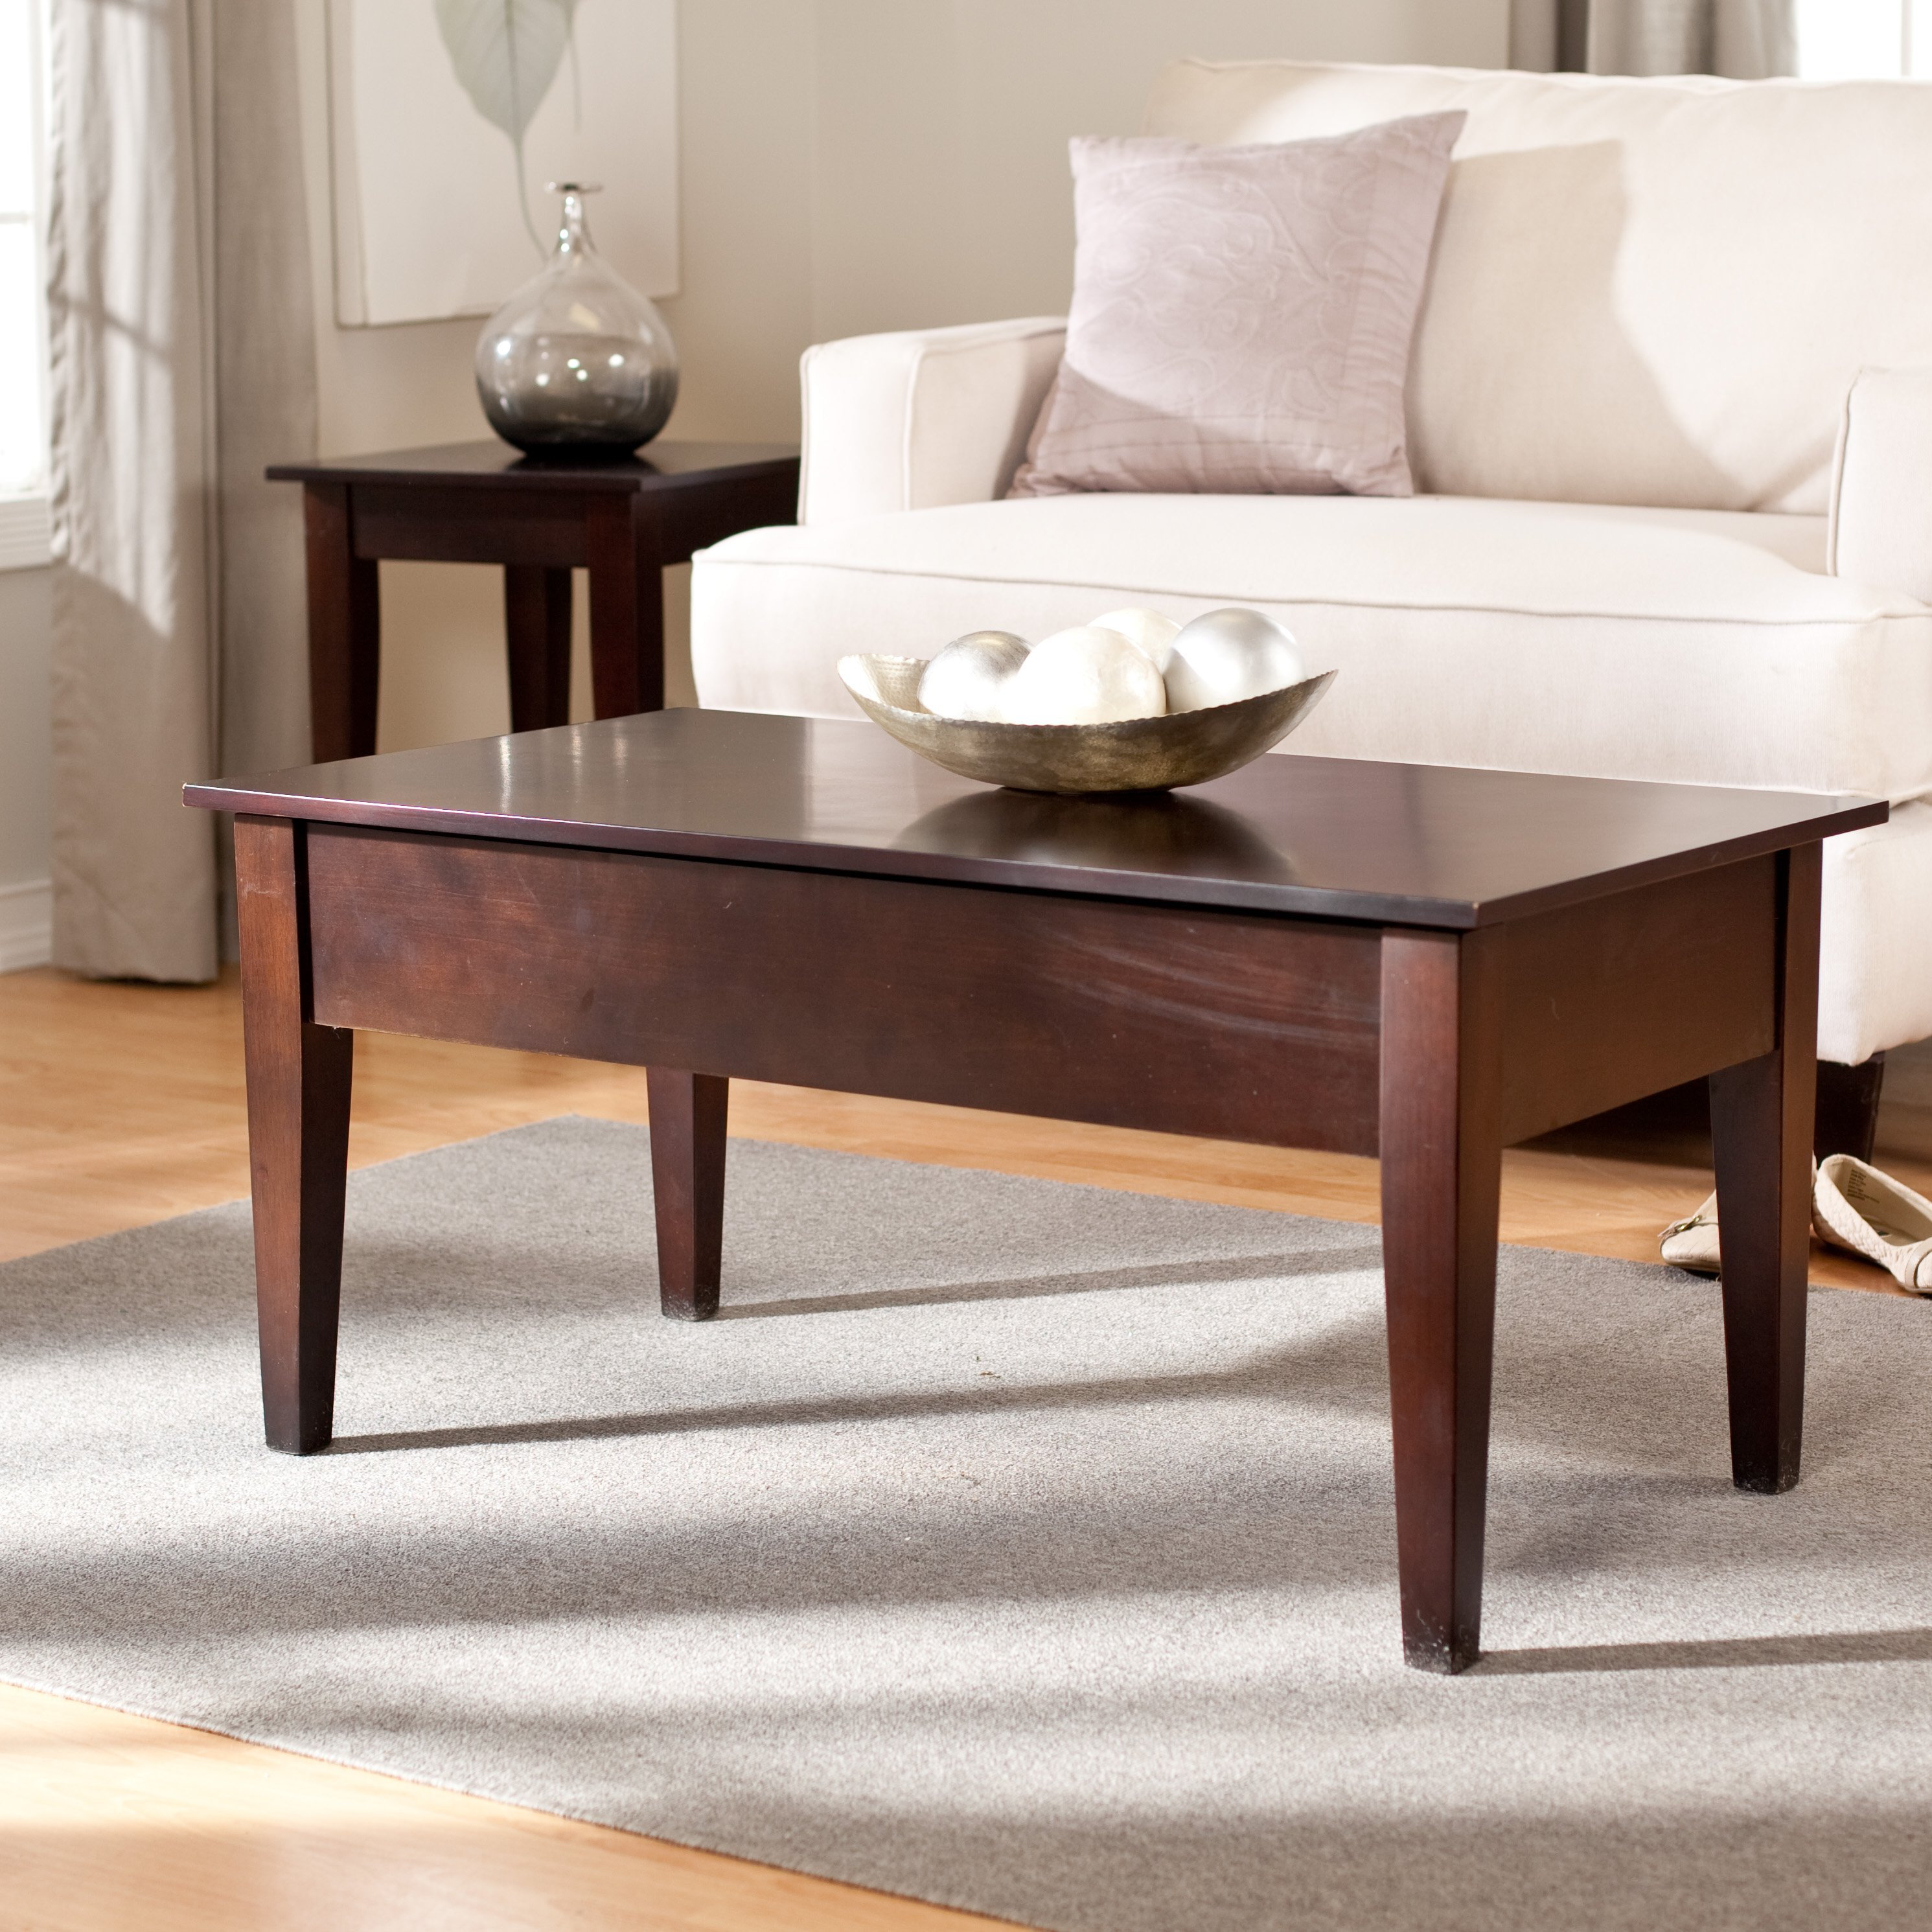 Turner Lift-Top Occasional Table Collection - Espresso